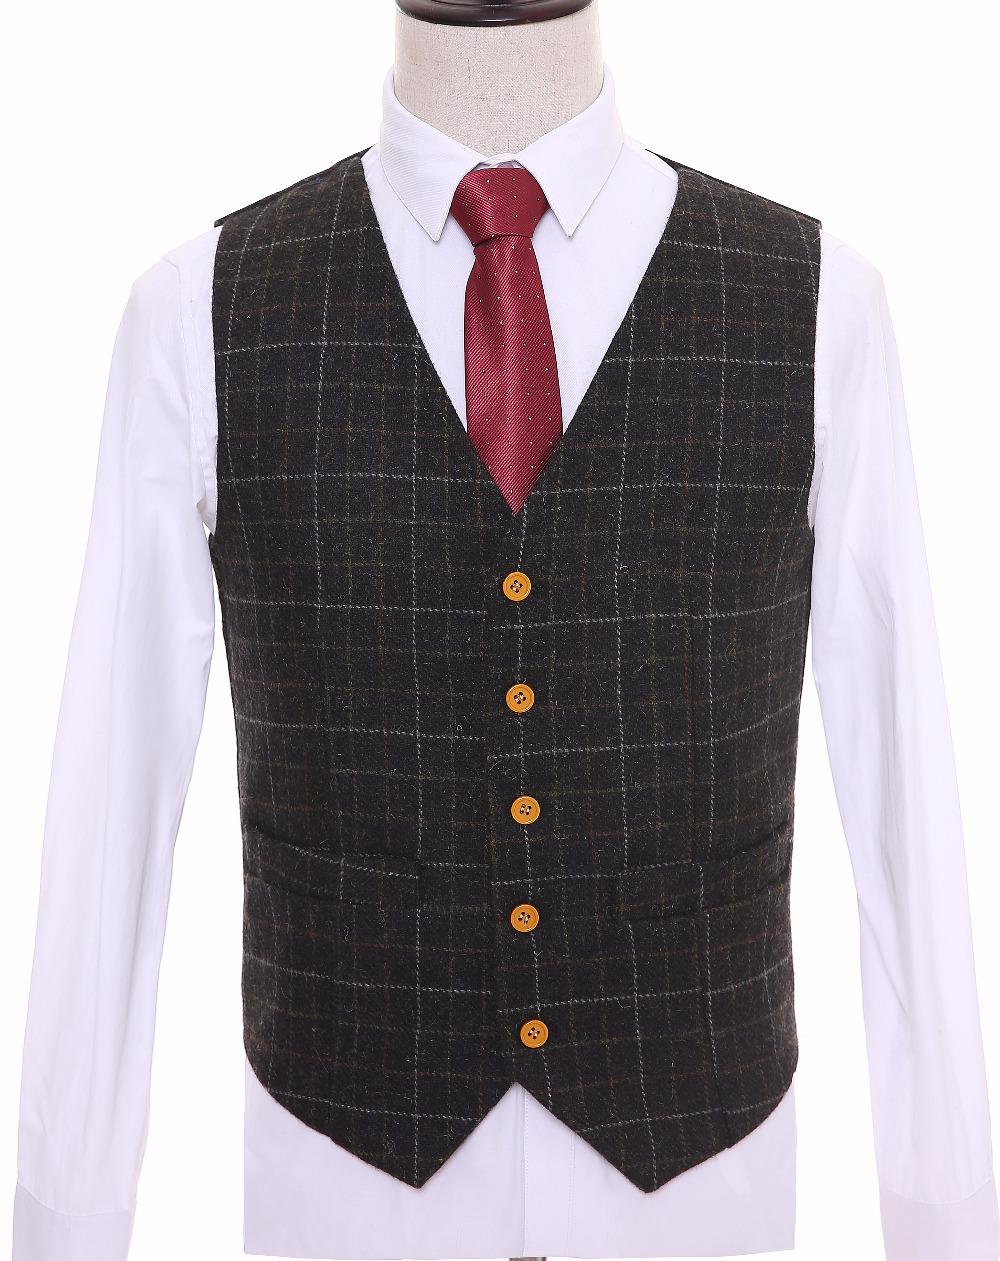 Compare Prices on Tweed Vest Men- Online Shopping/Buy Low Price ...